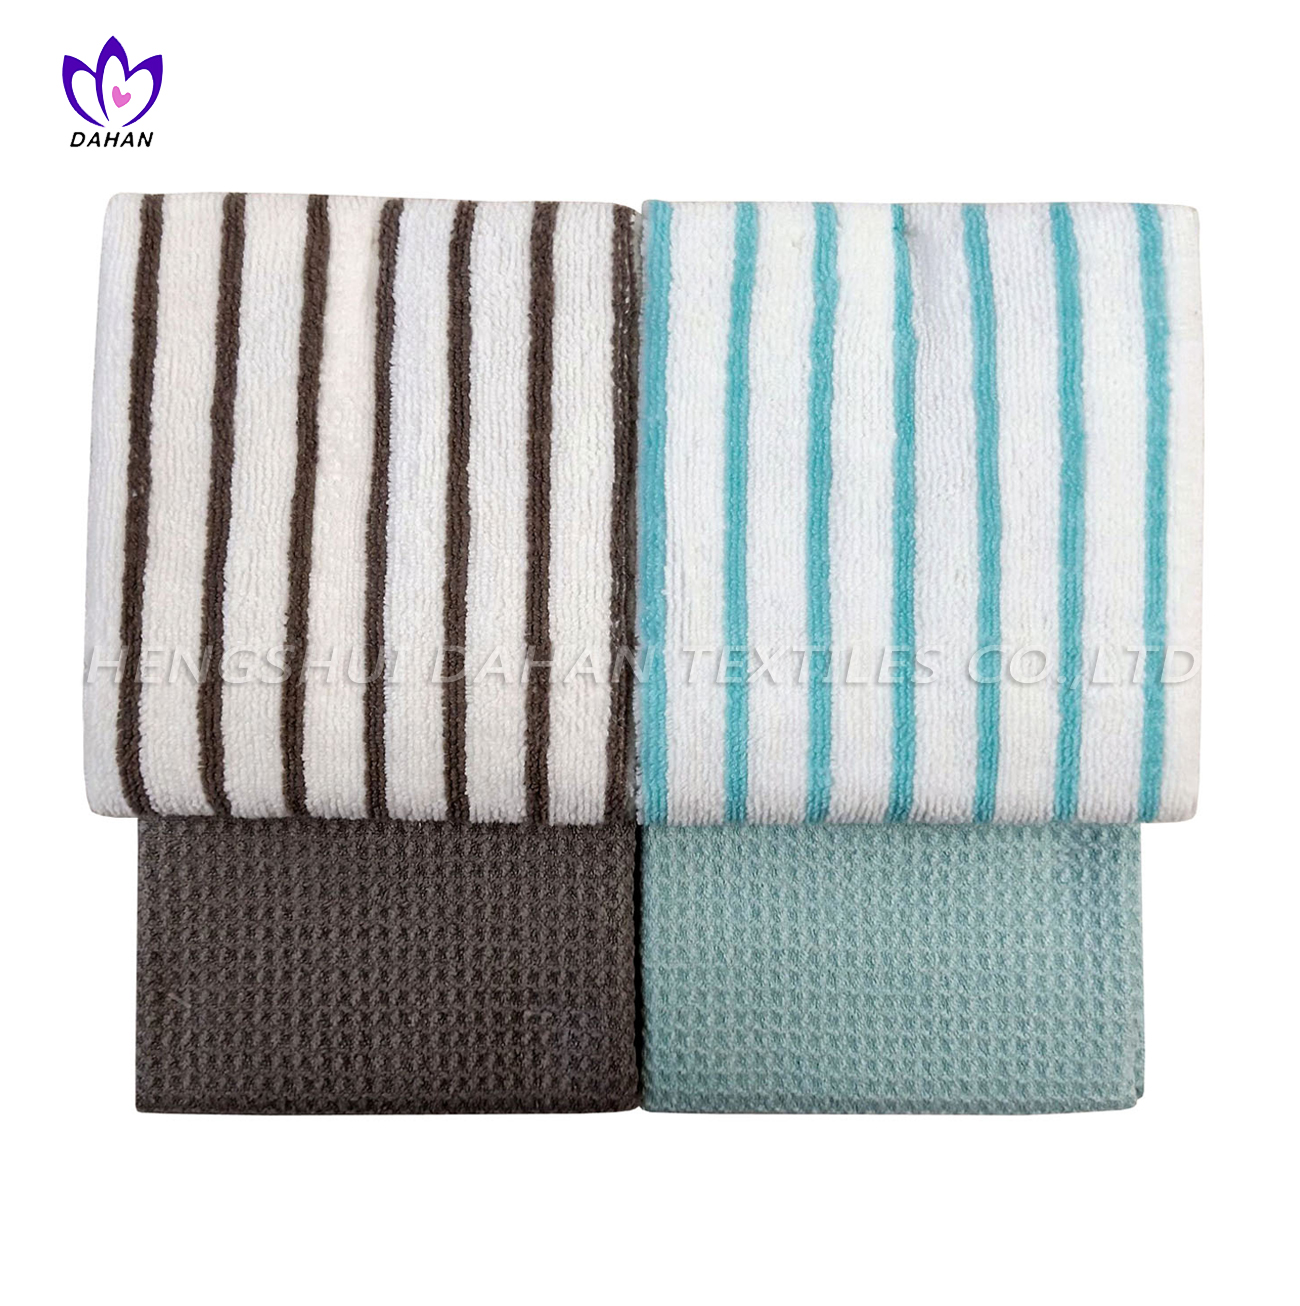 2807 Microfiber solid color/printing kitchen towel-3pack.